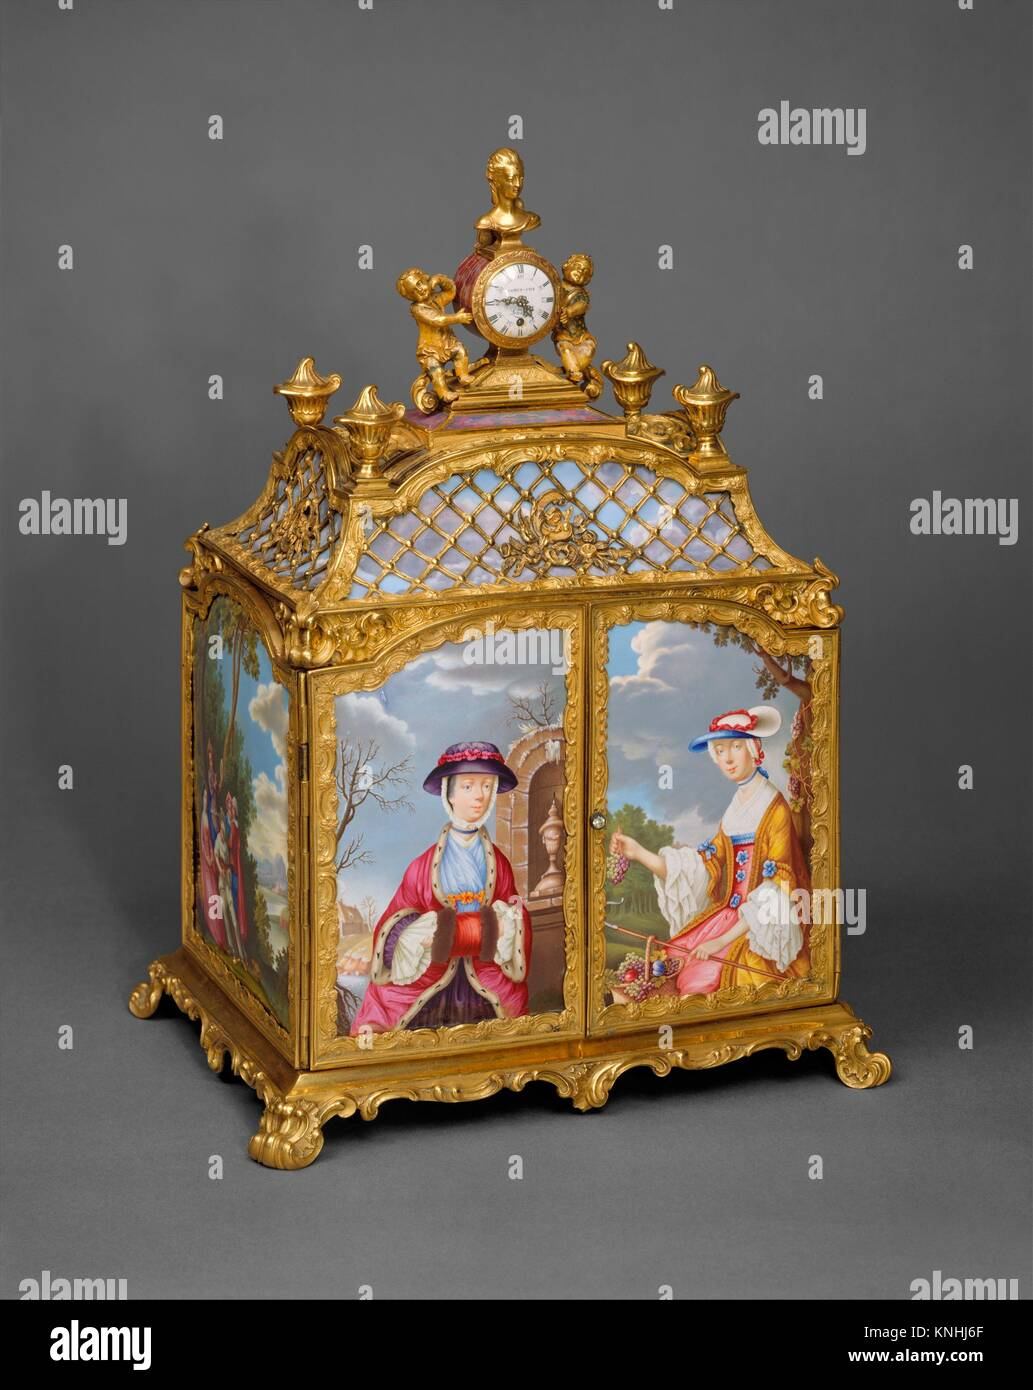 Jewel cabinet with watch. Purveyor: James Cox (British, ca. 1723-1800); Artist: After a design by Antoine Watteau - Stock Image